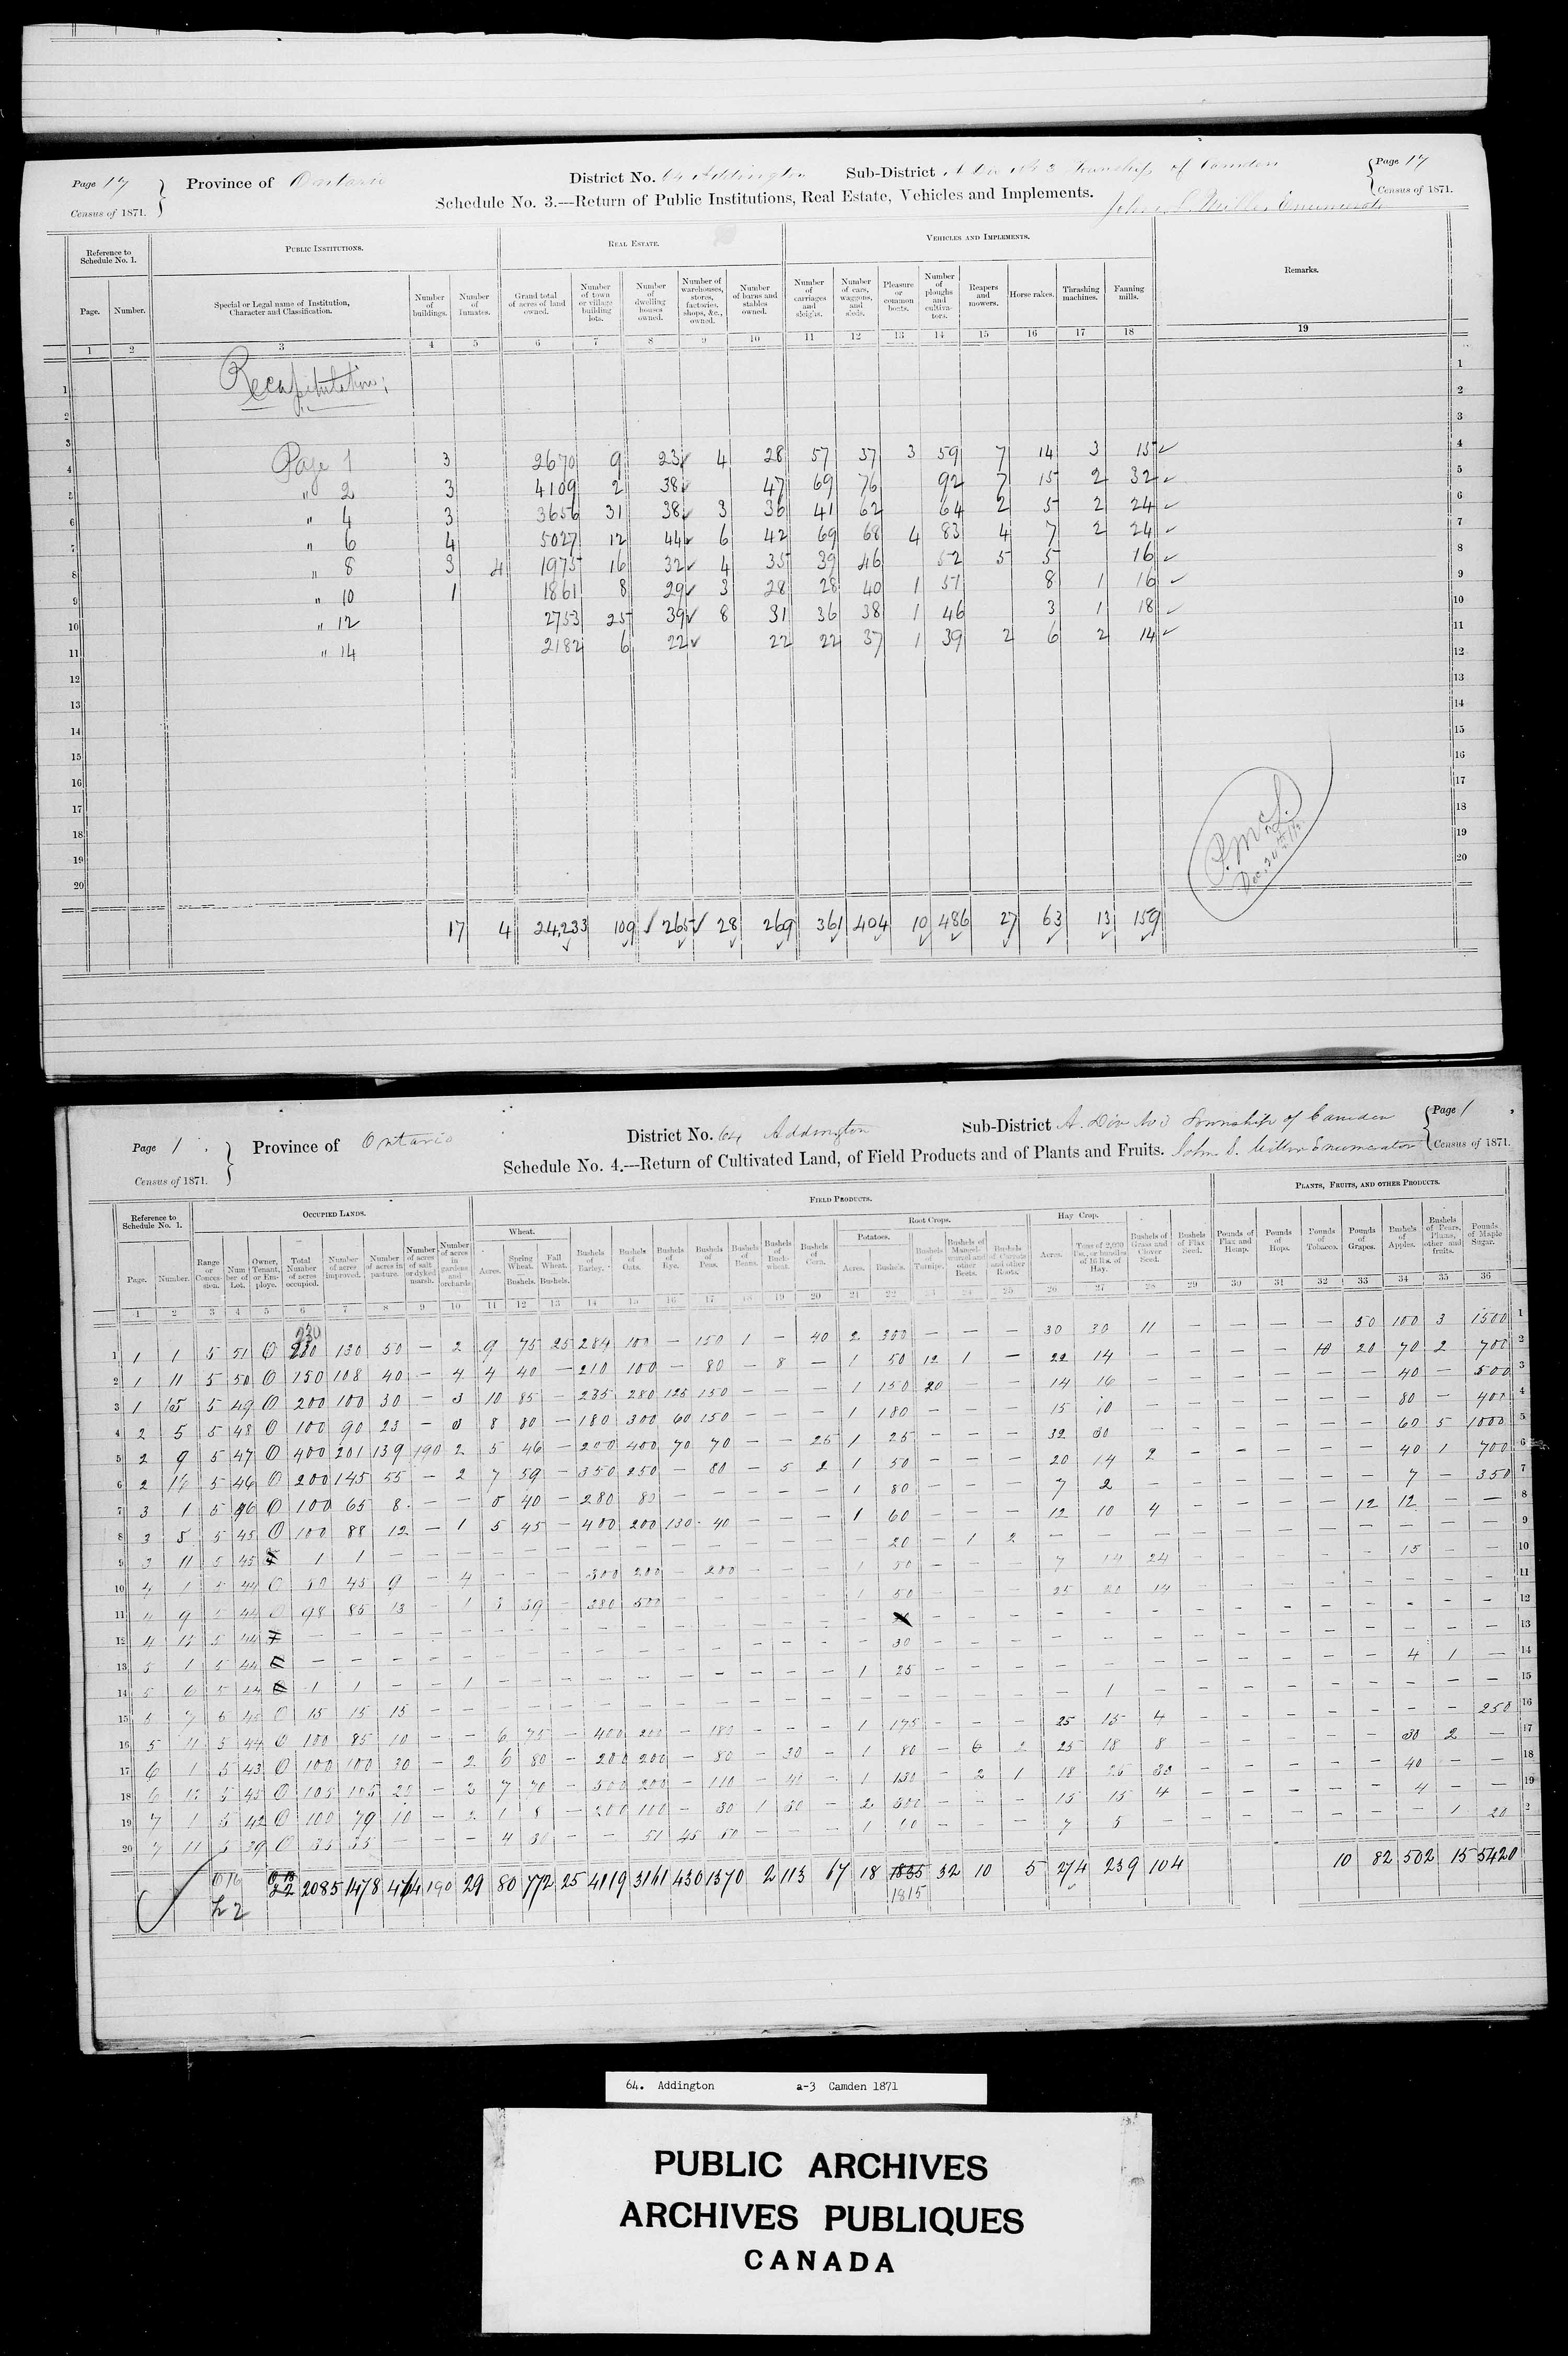 Title: Census of Canada, 1871 - Mikan Number: 142105 - Microform: c-9996